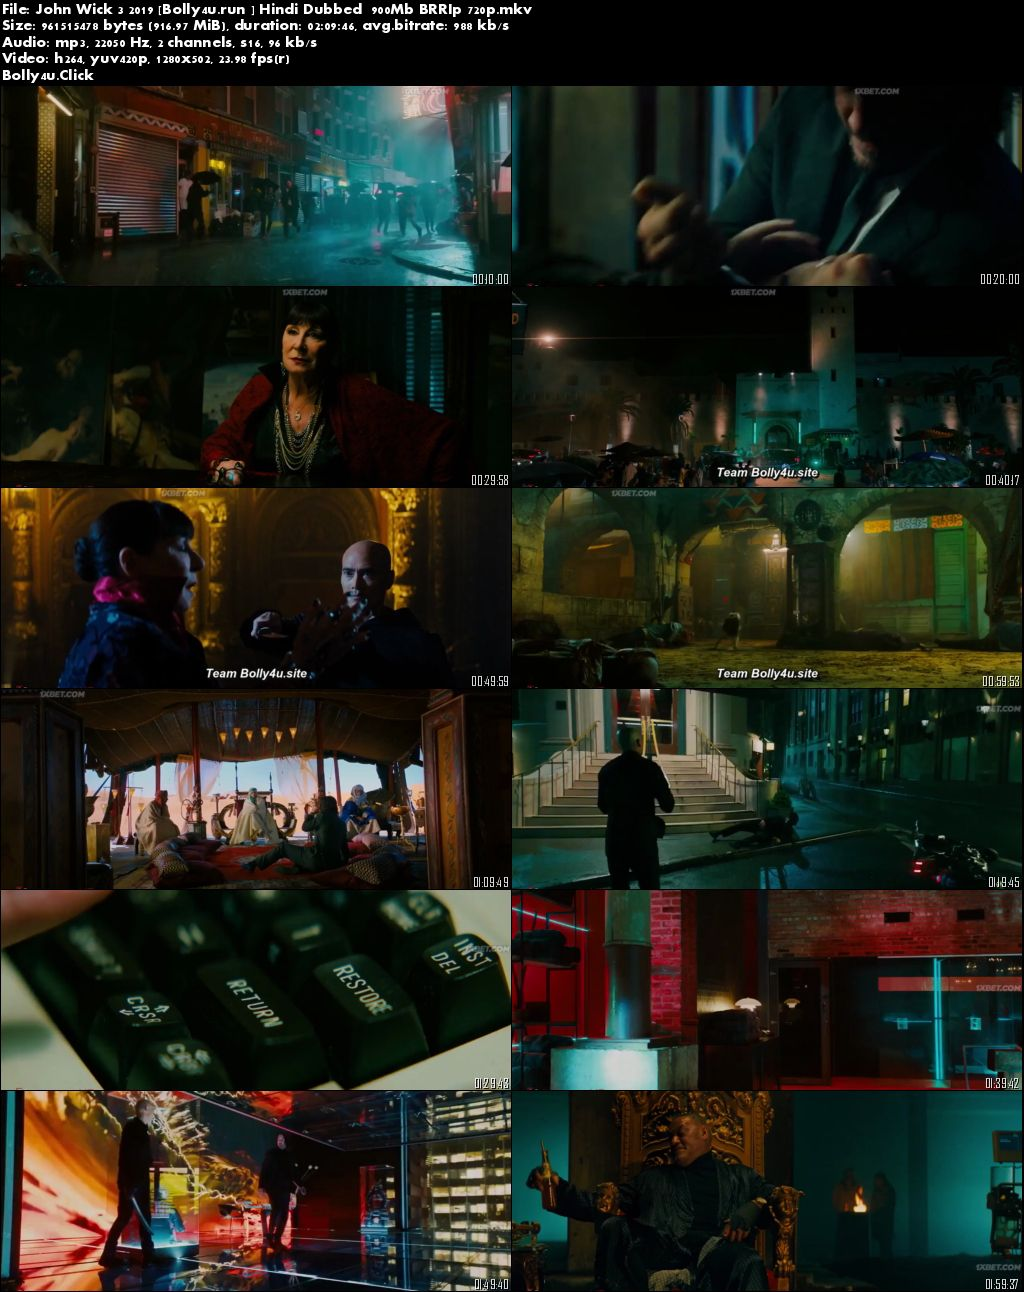 John Wick 3 2019 BRRip 900Mb Hindi Dubbed 720p Download